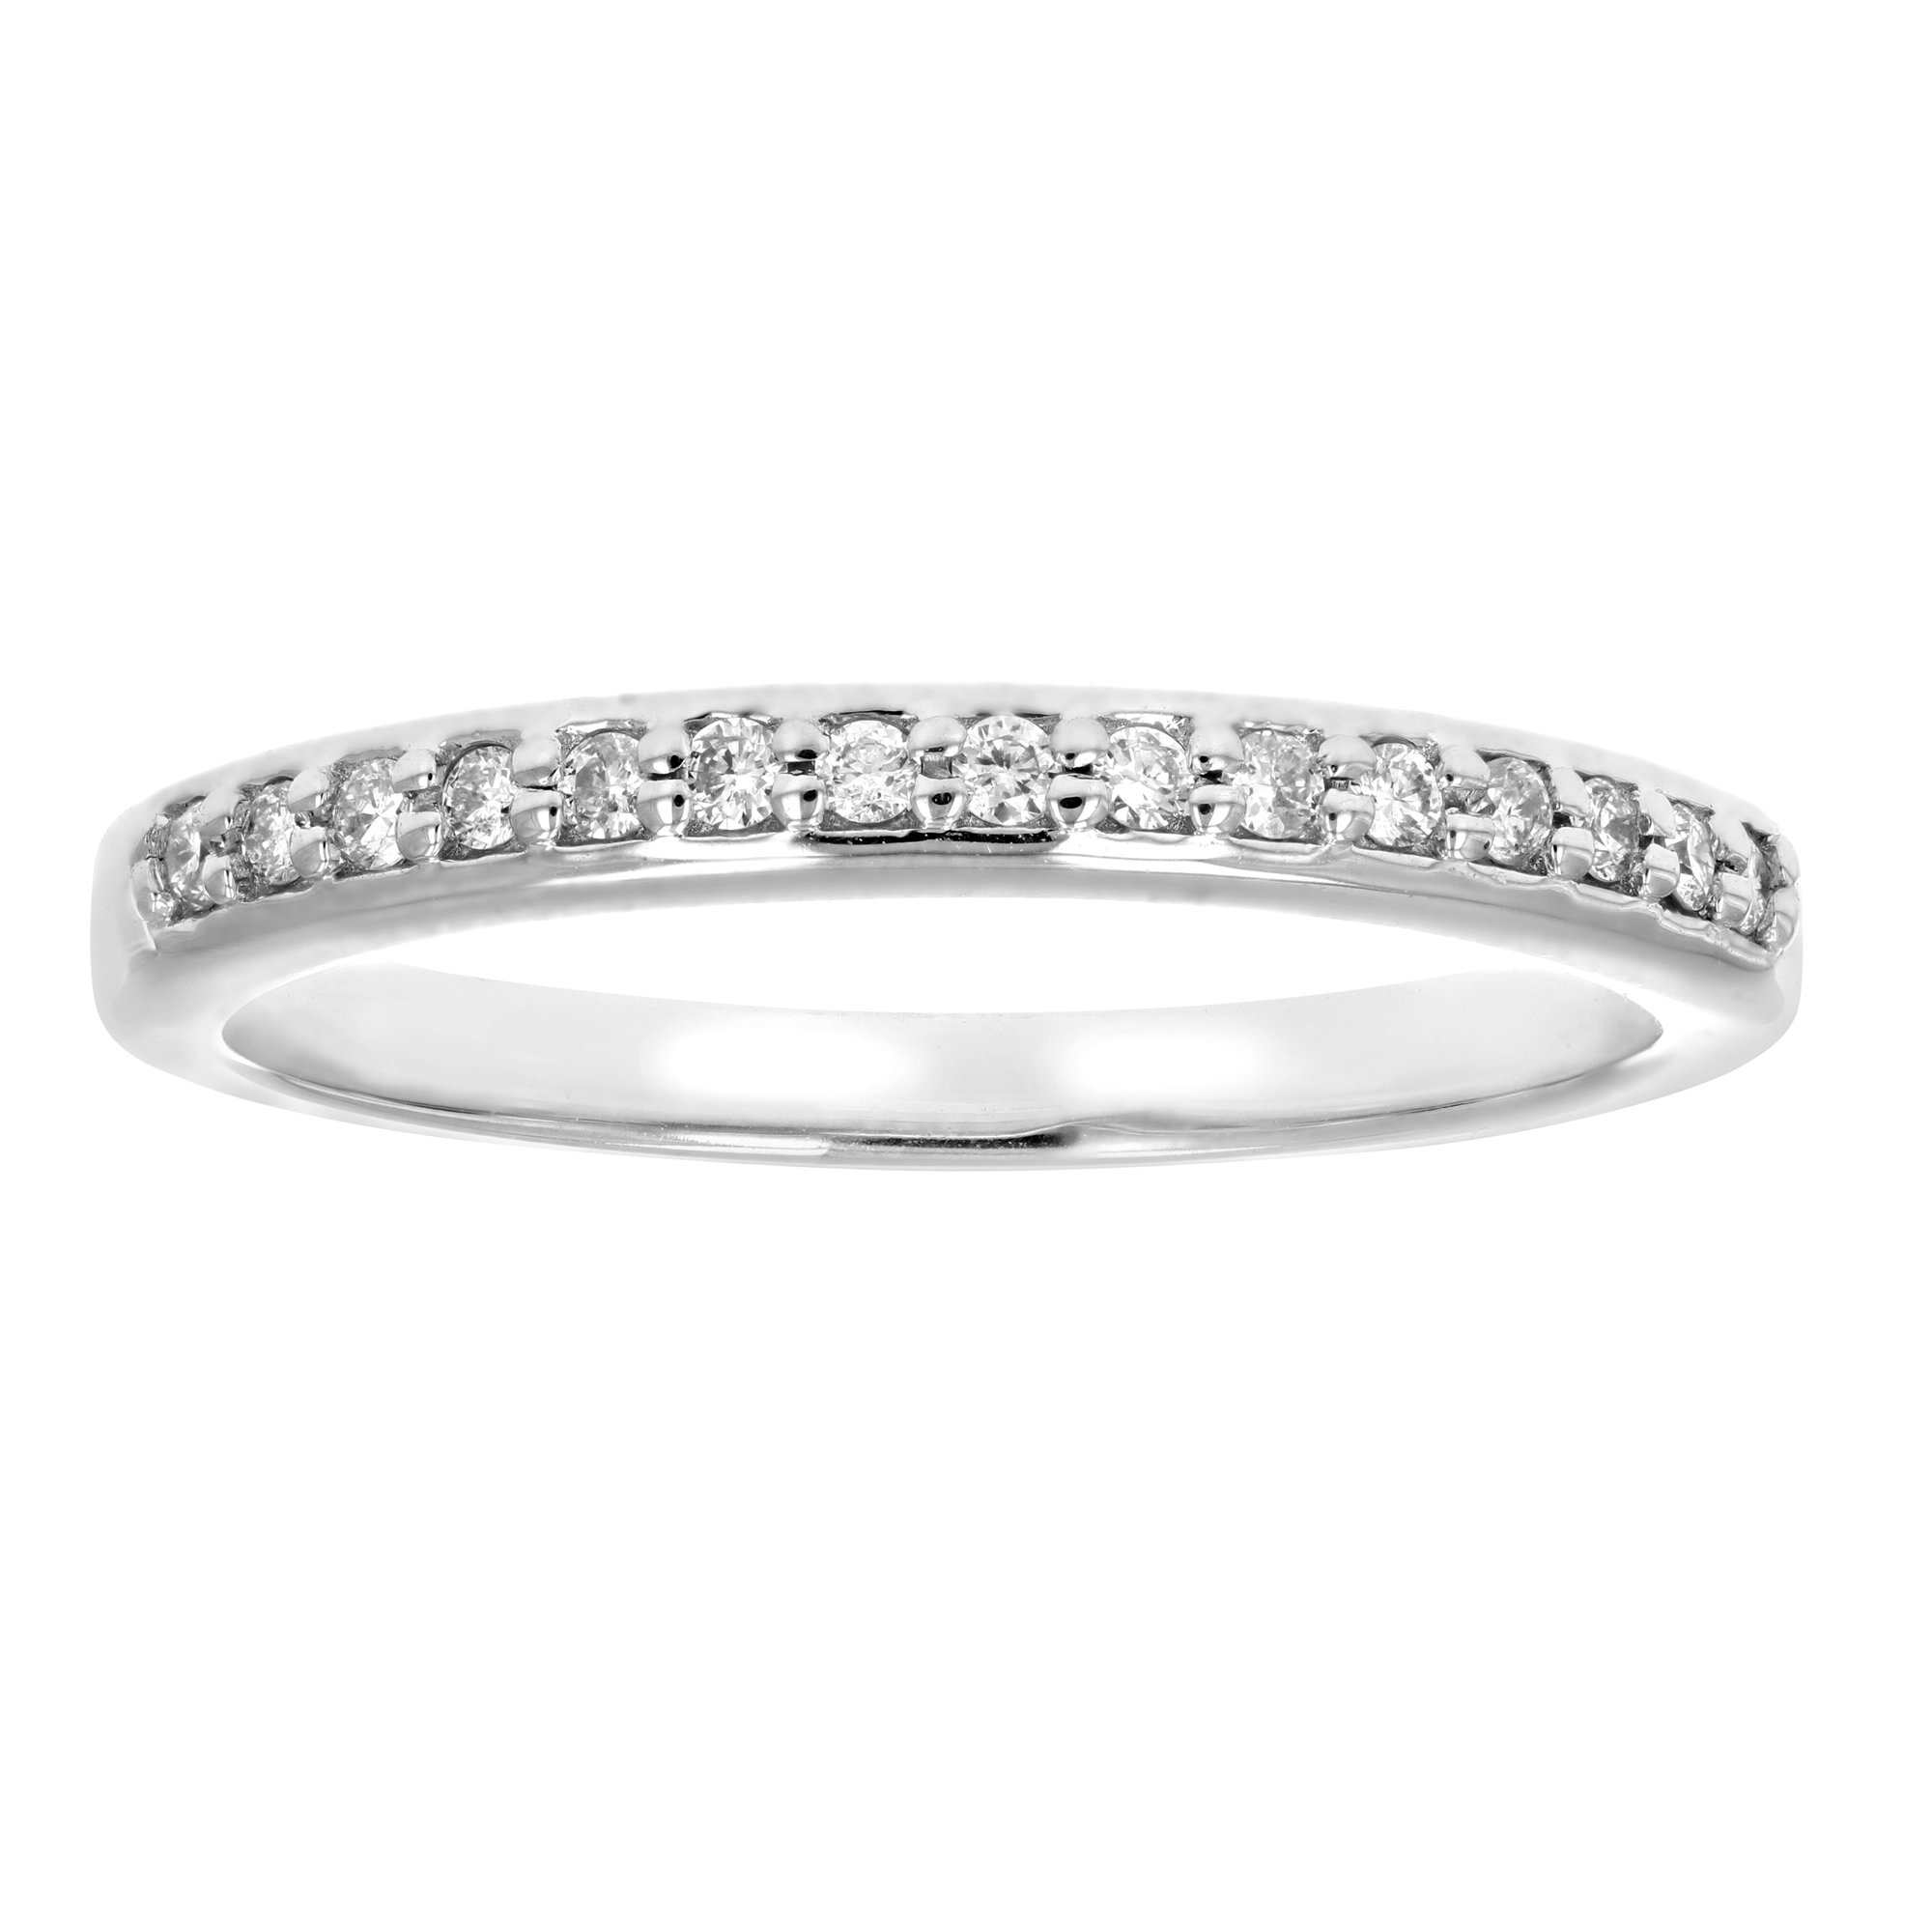 1/8 ctw Petite Diamond Wedding Band in 10K White Gold In Size 7